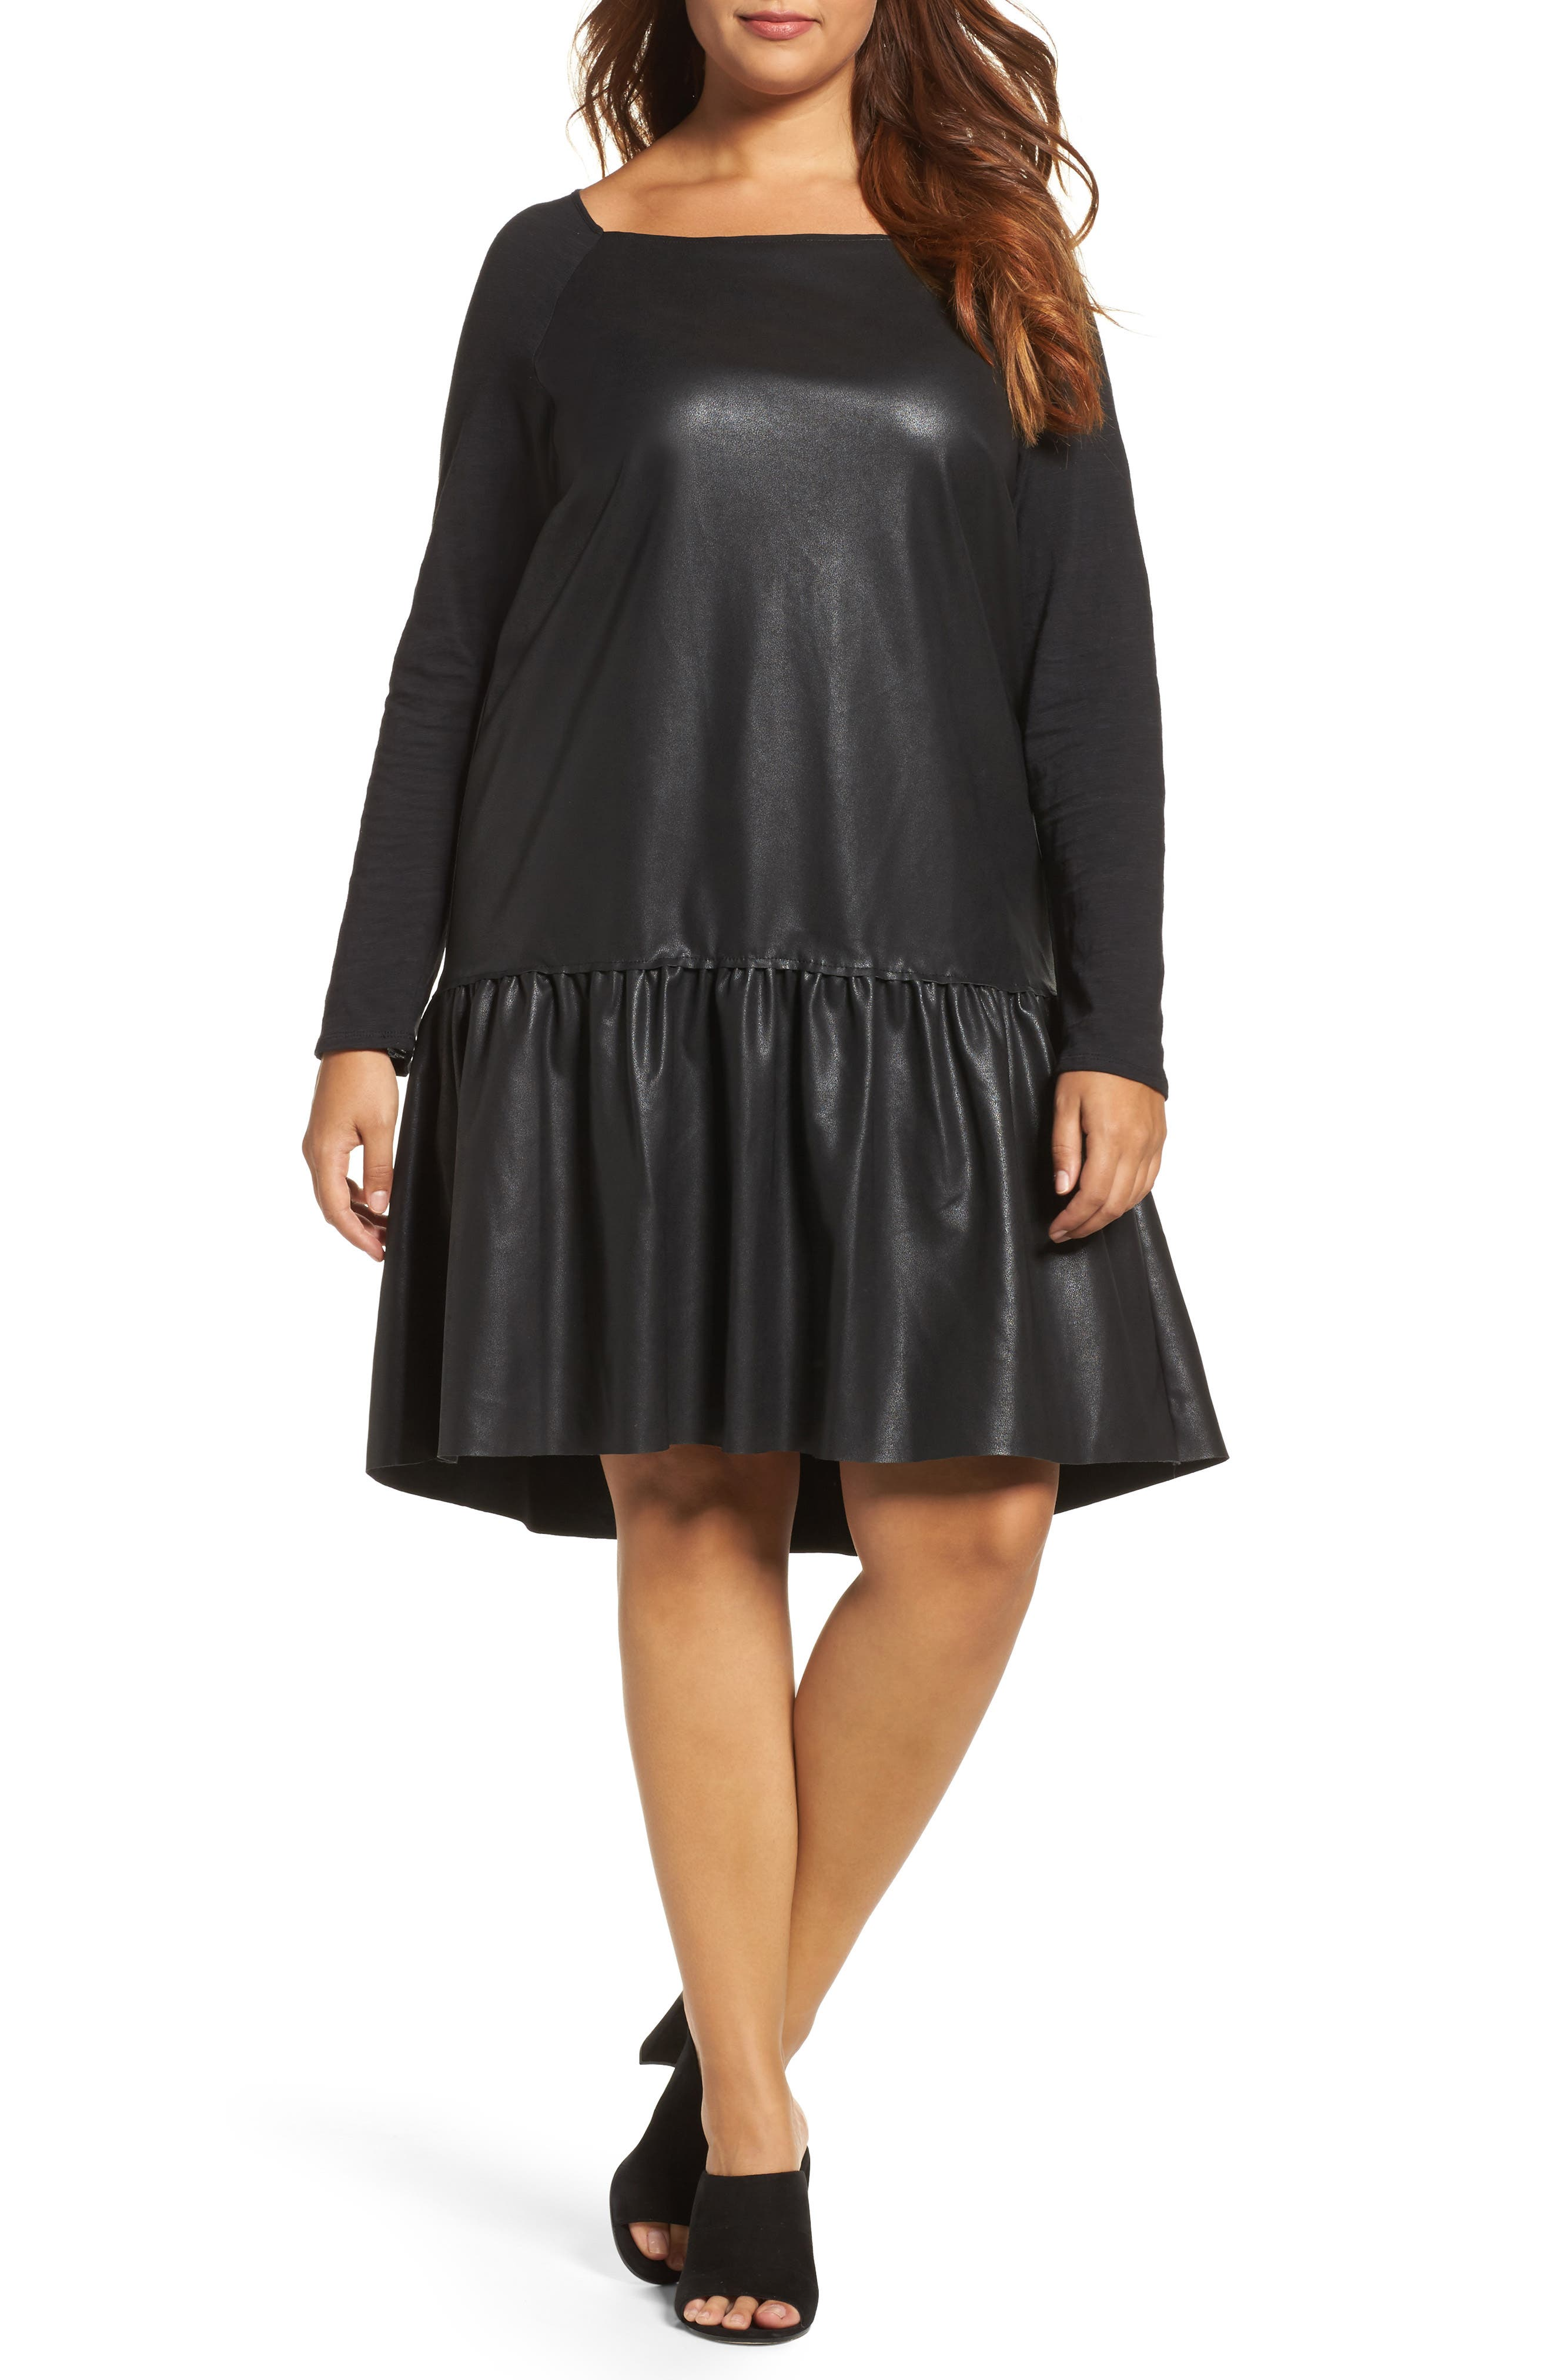 Main Image - ELVI Drop Waist Faux Leather & Knit Dress (Plus Size)